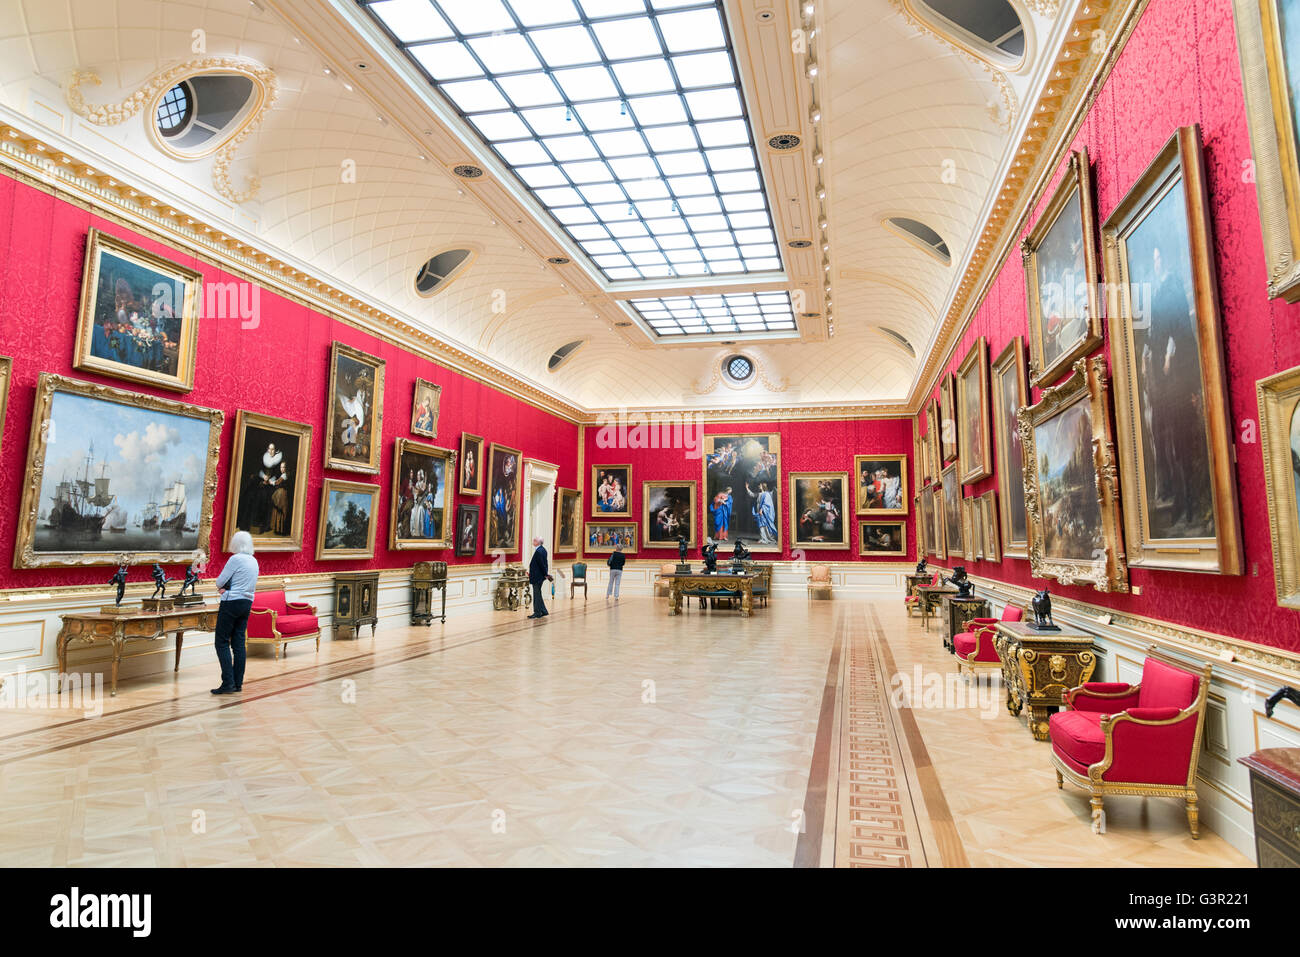 The Great Gallery in the Wallace Collection art gallery, London, England, UK - Stock Image